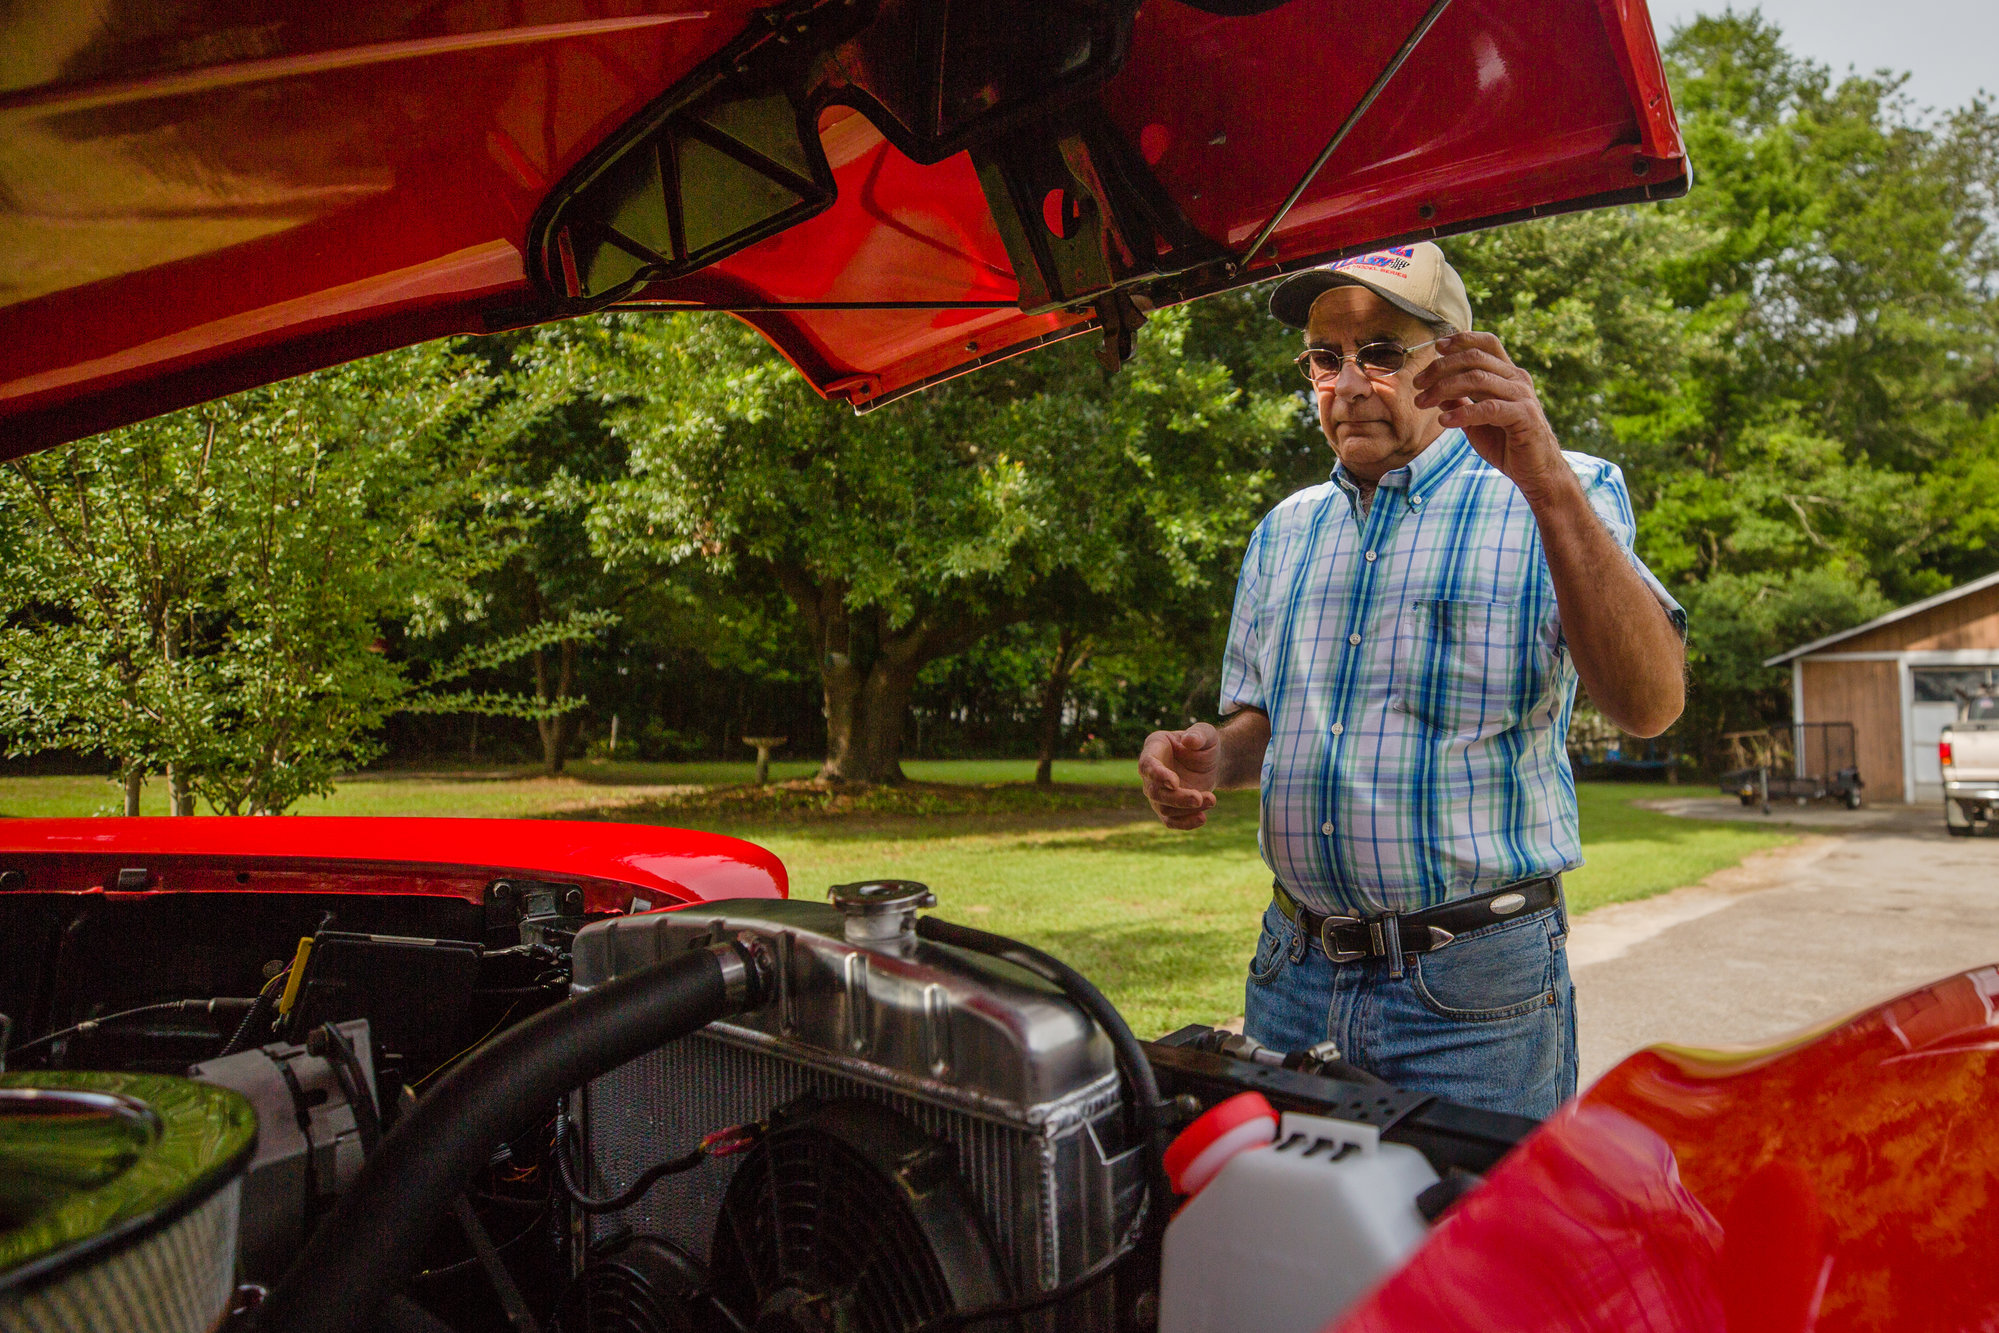 Harold Hodge pops the hood of his '55 Chevy Bel Air.